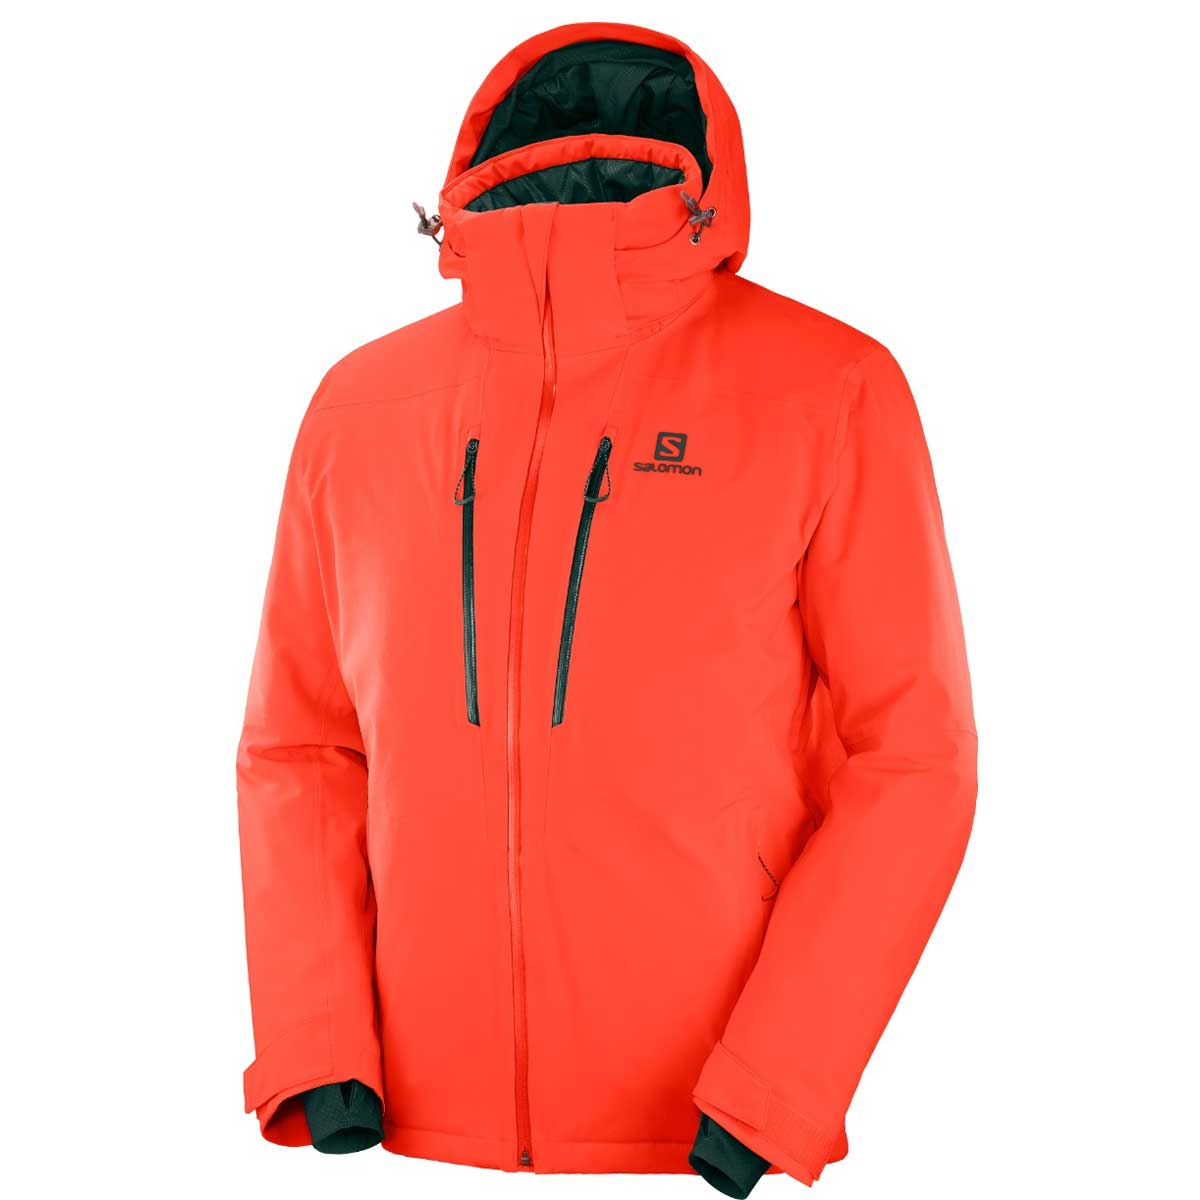 Salomon Men's Icefrost Jacket in Cherry Tomato